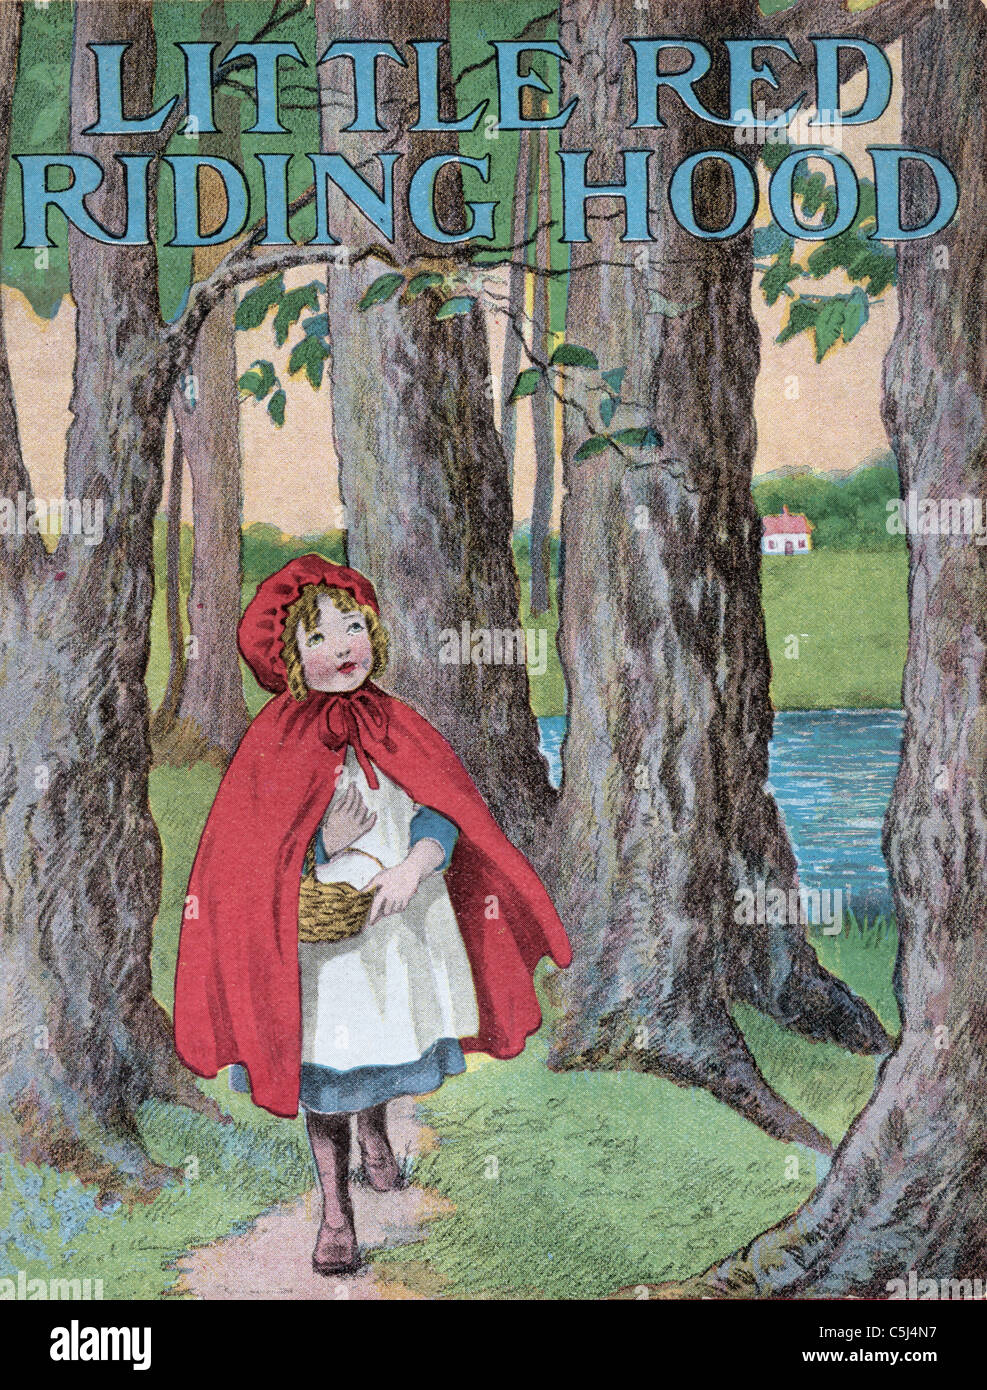 Little Red Riding Hood Book Cover Stock Photos Little Red Riding